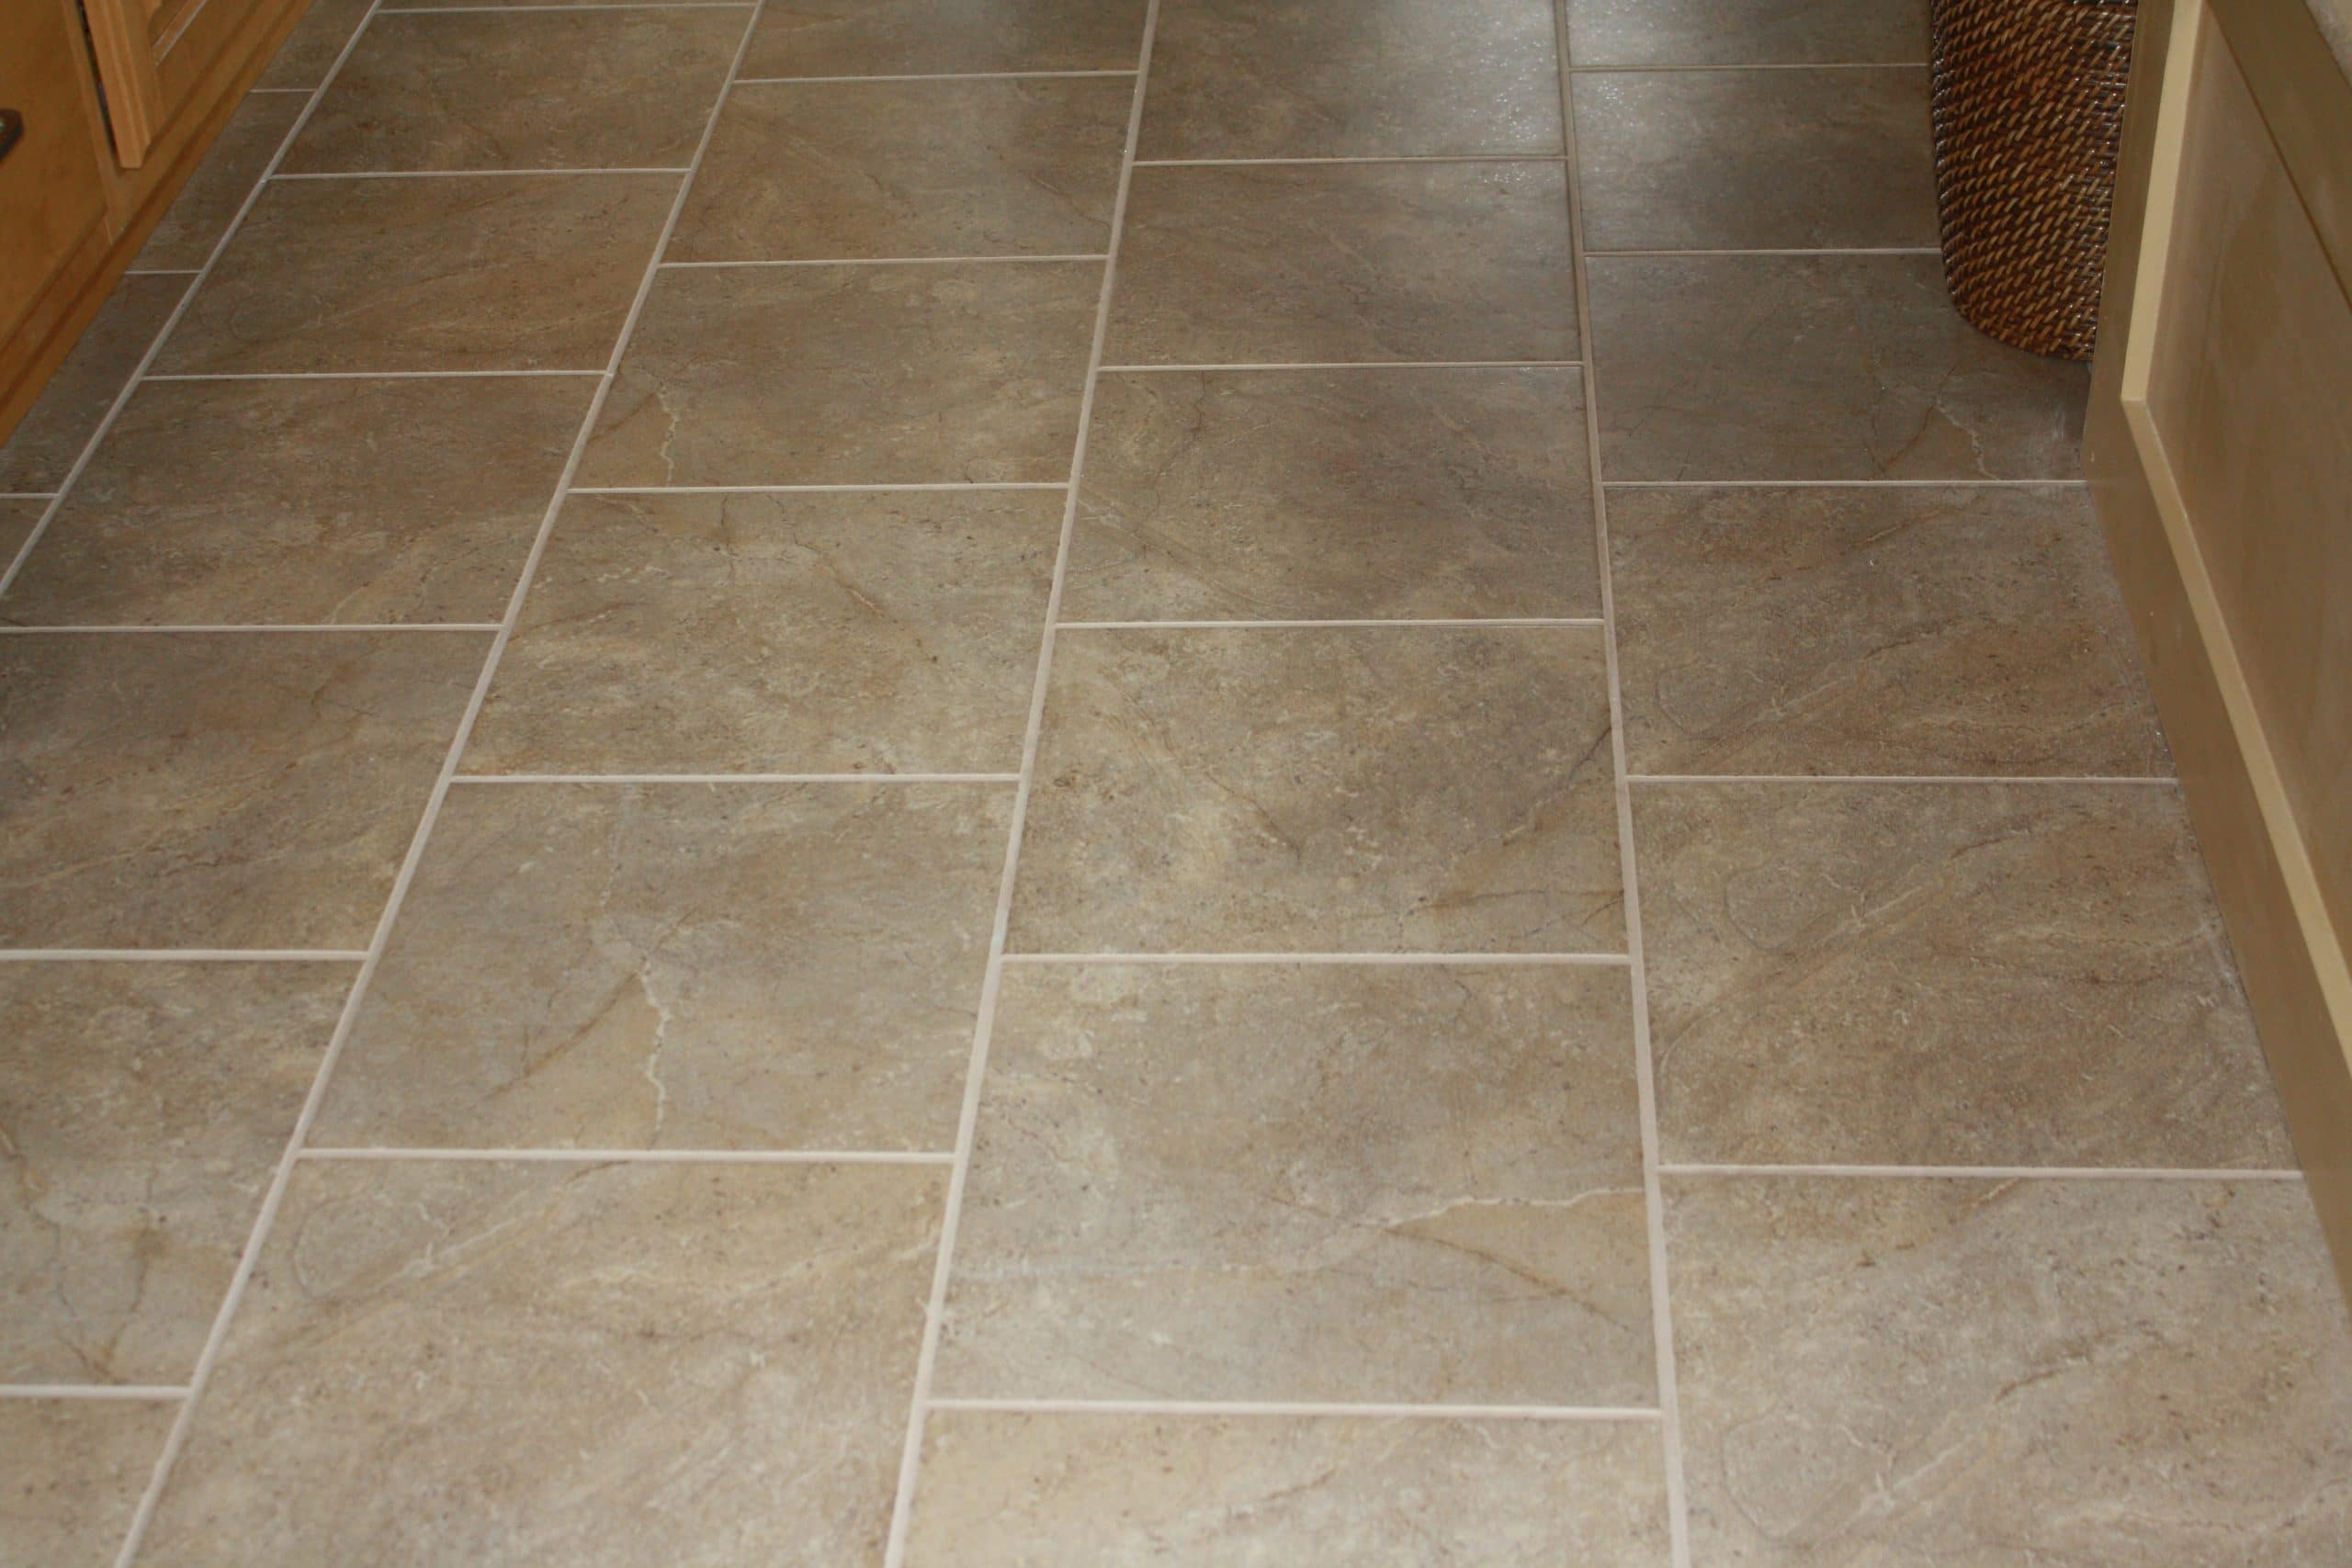 Grout color sealing riverview fl citrus 813 314 7800 Different design and colors of tiles